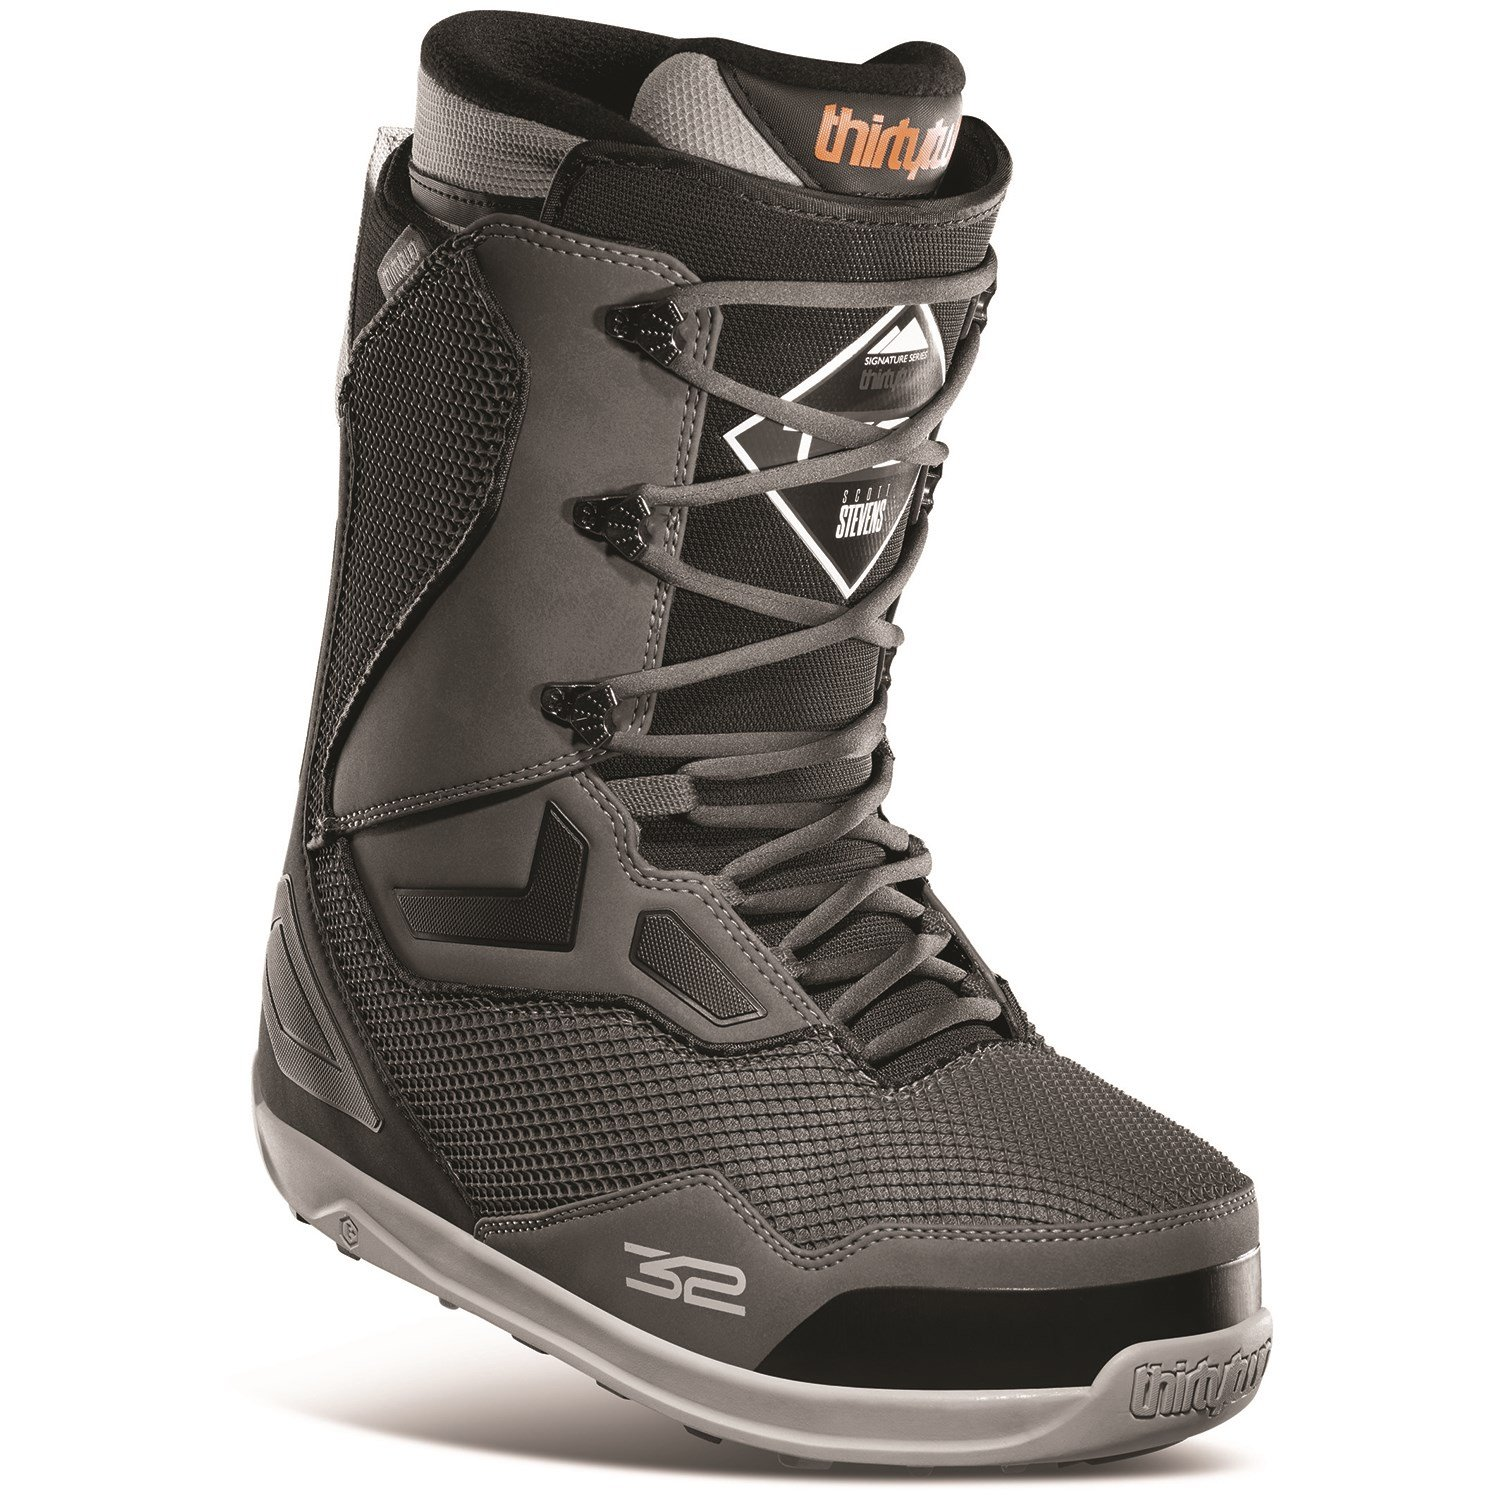 2021 Thirtytwo TM-2 Stevens Men's Snowboard Boots